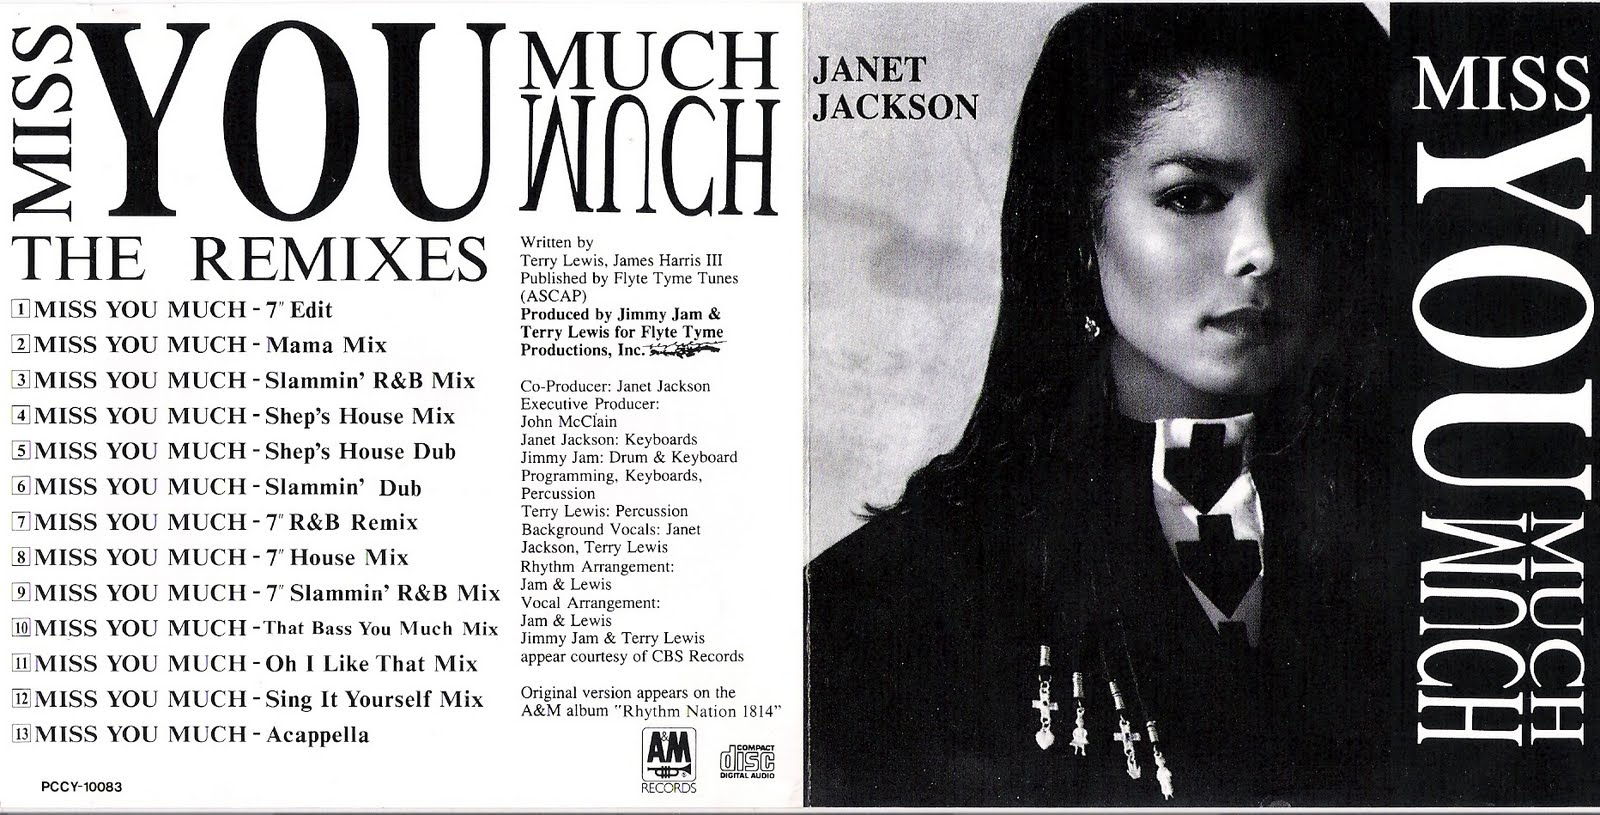 http://1.bp.blogspot.com/_AUC9AYvz2pw/TSYHsJdkENI/AAAAAAAAANM/otewYJwz-BE/s1600/00-janet_jackson-miss_you_much-%2528japan_cdm%2529-1989-osc.jpg